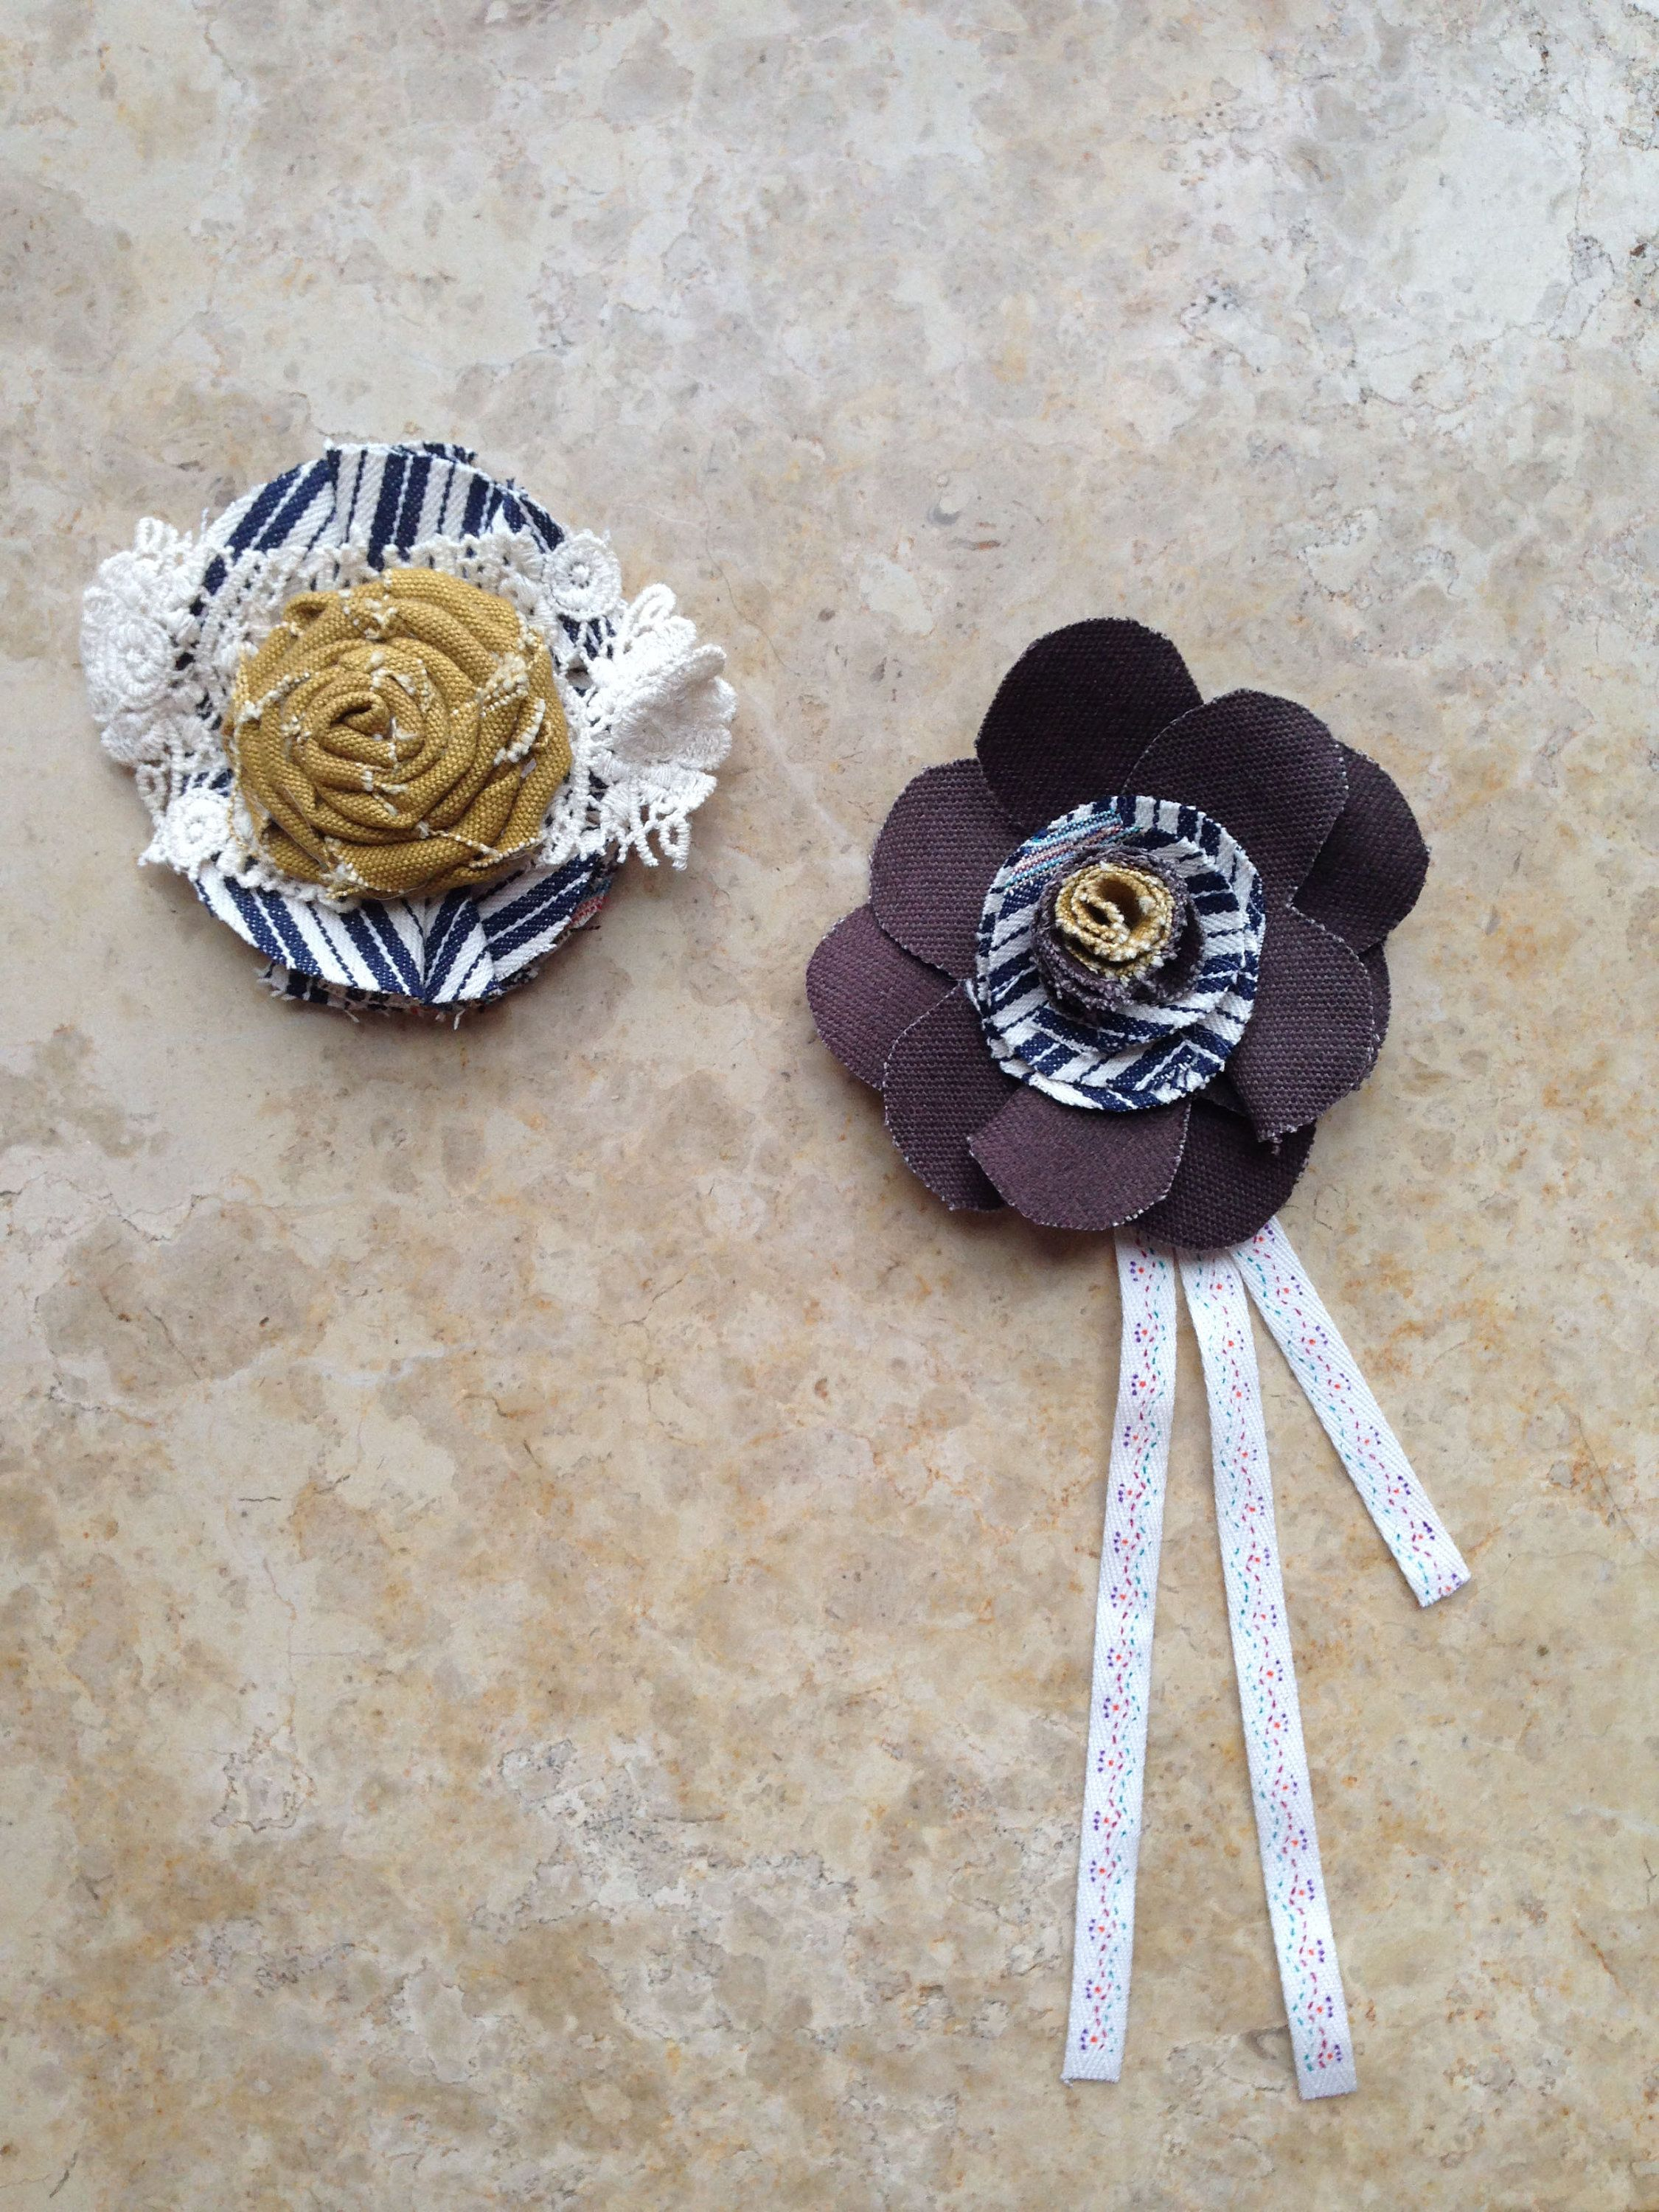 61e2e61783c Textile Lace Tassel Flower Rosette Brooch Badge Set | Fabric ...